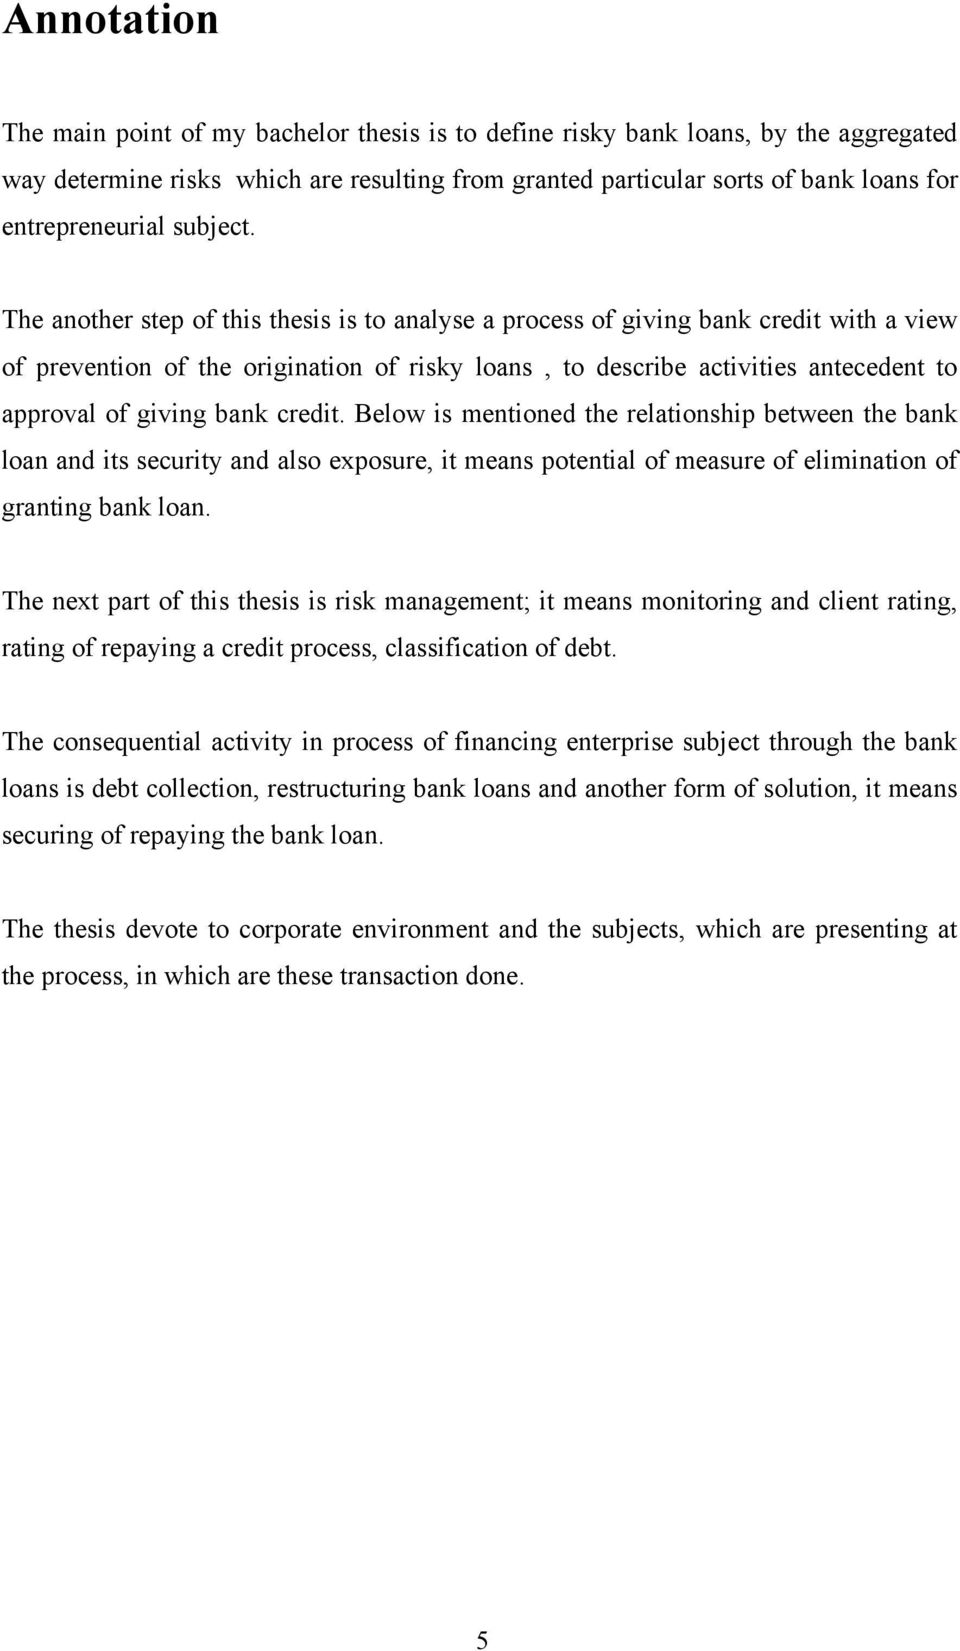 The another step of this thesis is to analyse a process of giving bank credit with a view of prevention of the origination of risky loans, to describe activities antecedent to approval of giving bank